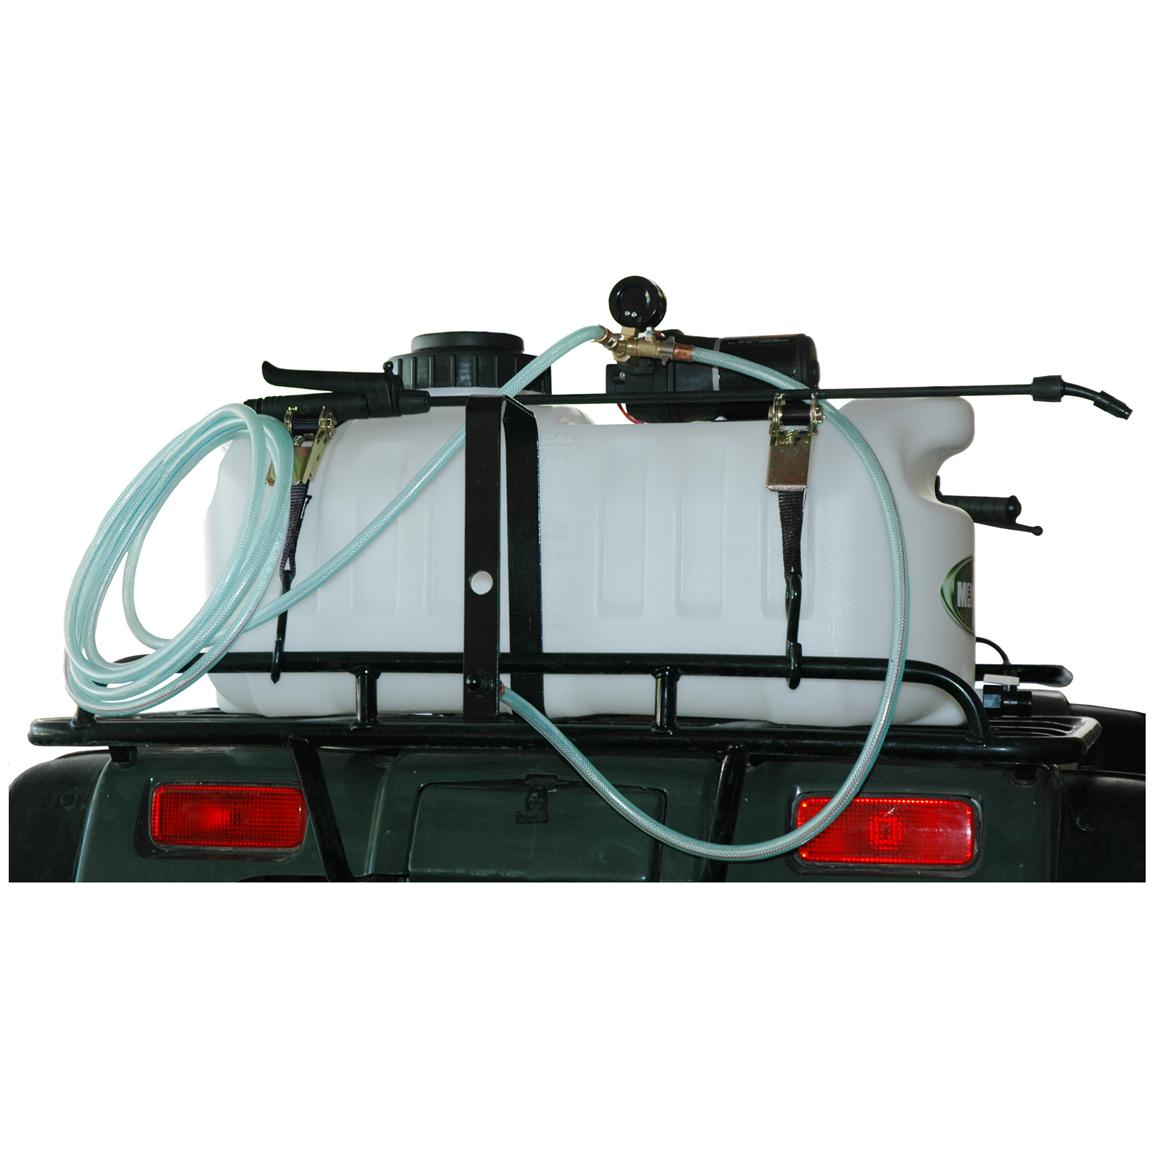 Moultrie 15-gal. Sprayer with 10' Boomless Sprayer